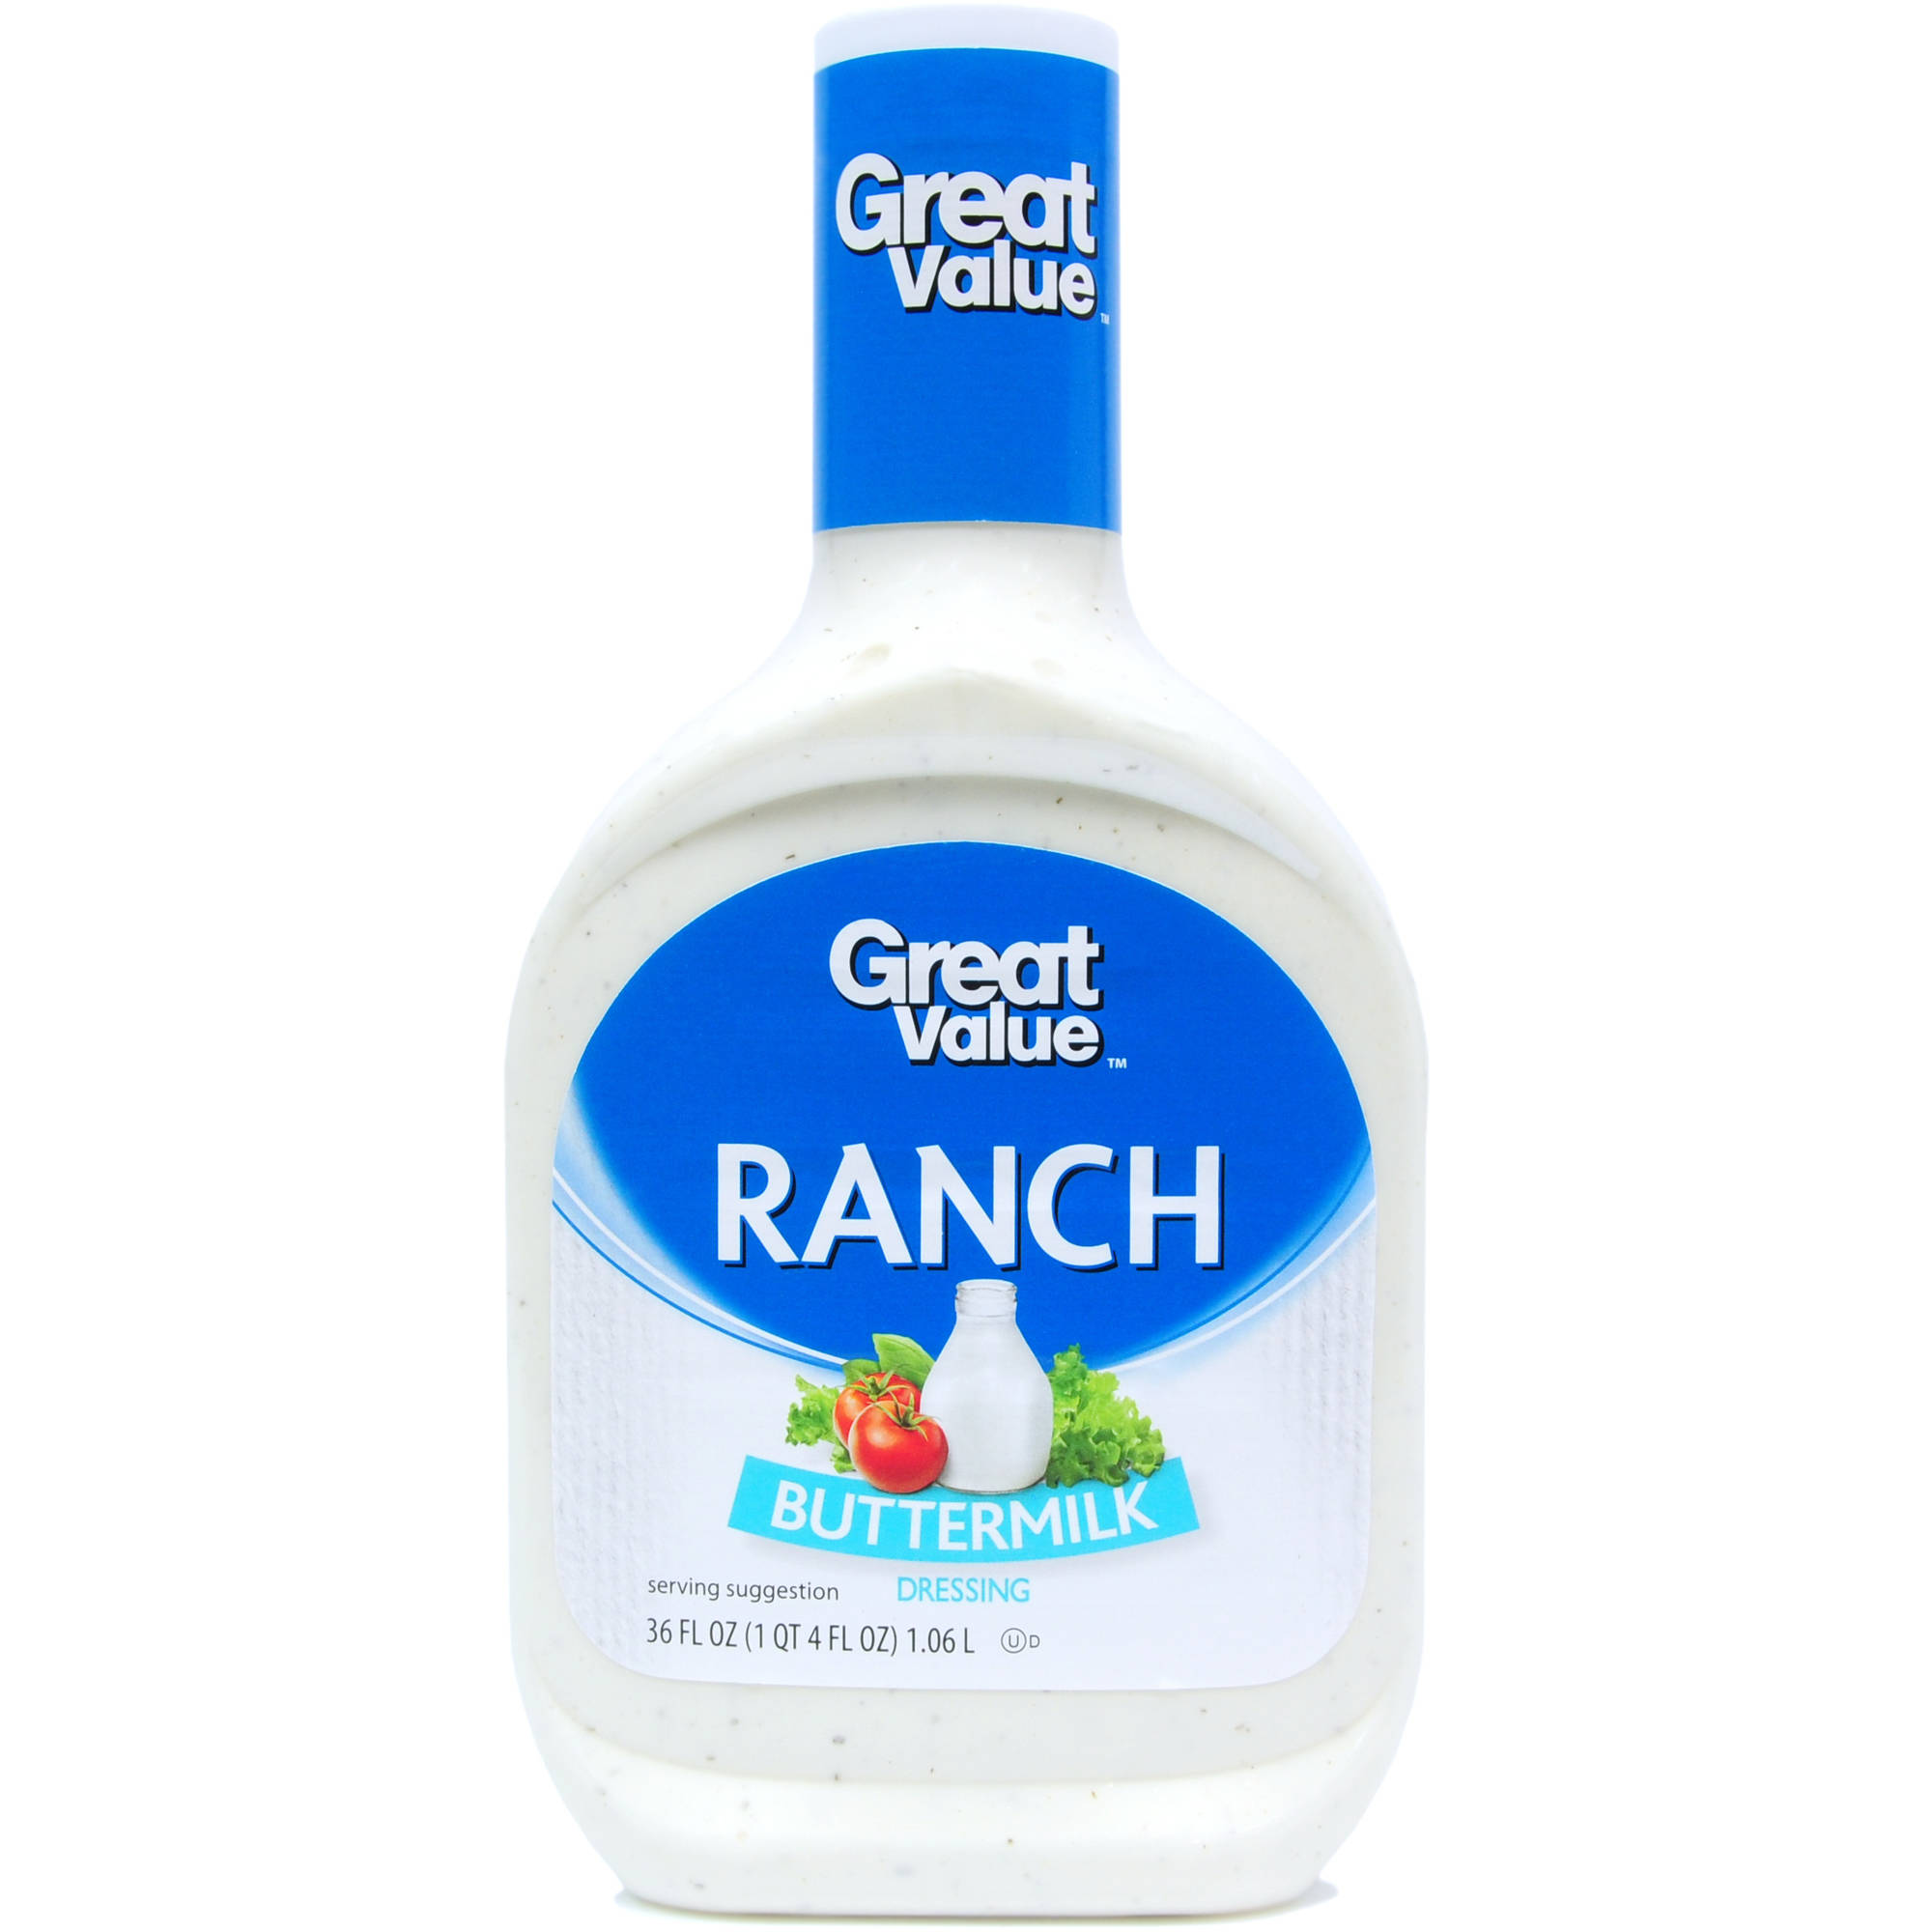 Great Value: Buttermilk Ranch Dressing, 36 oz